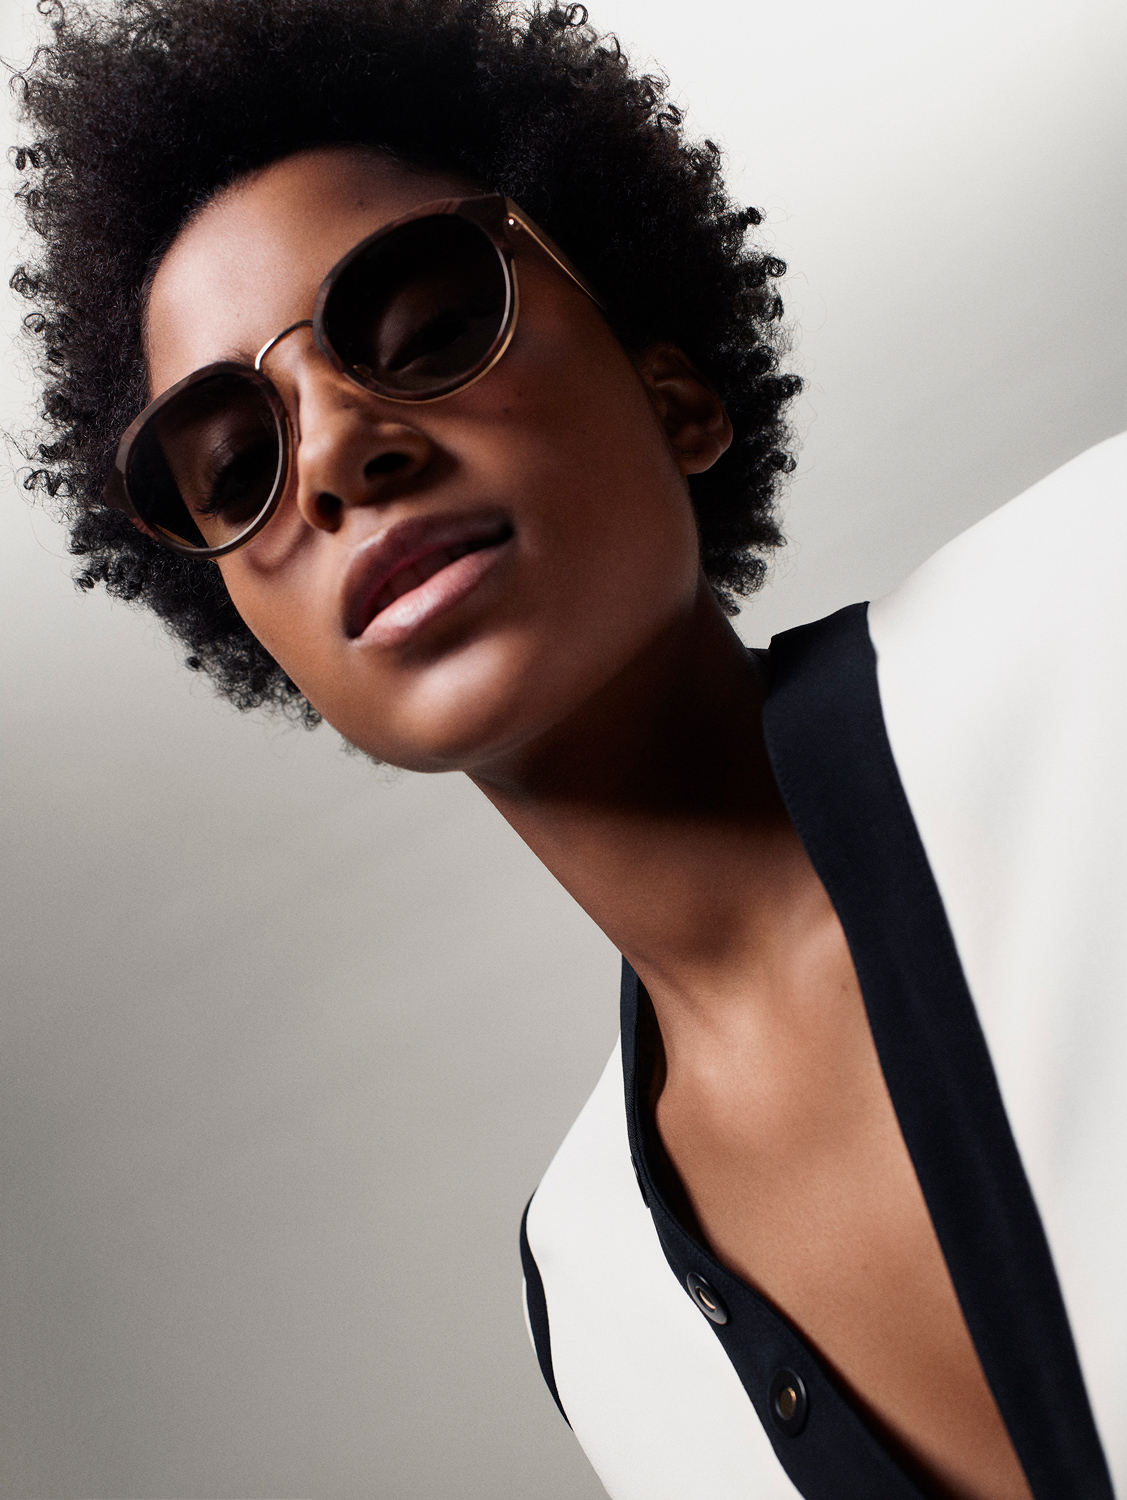 Shot_05_Sunglasses_Wyatt_MarbledWalnut_Alecia_007